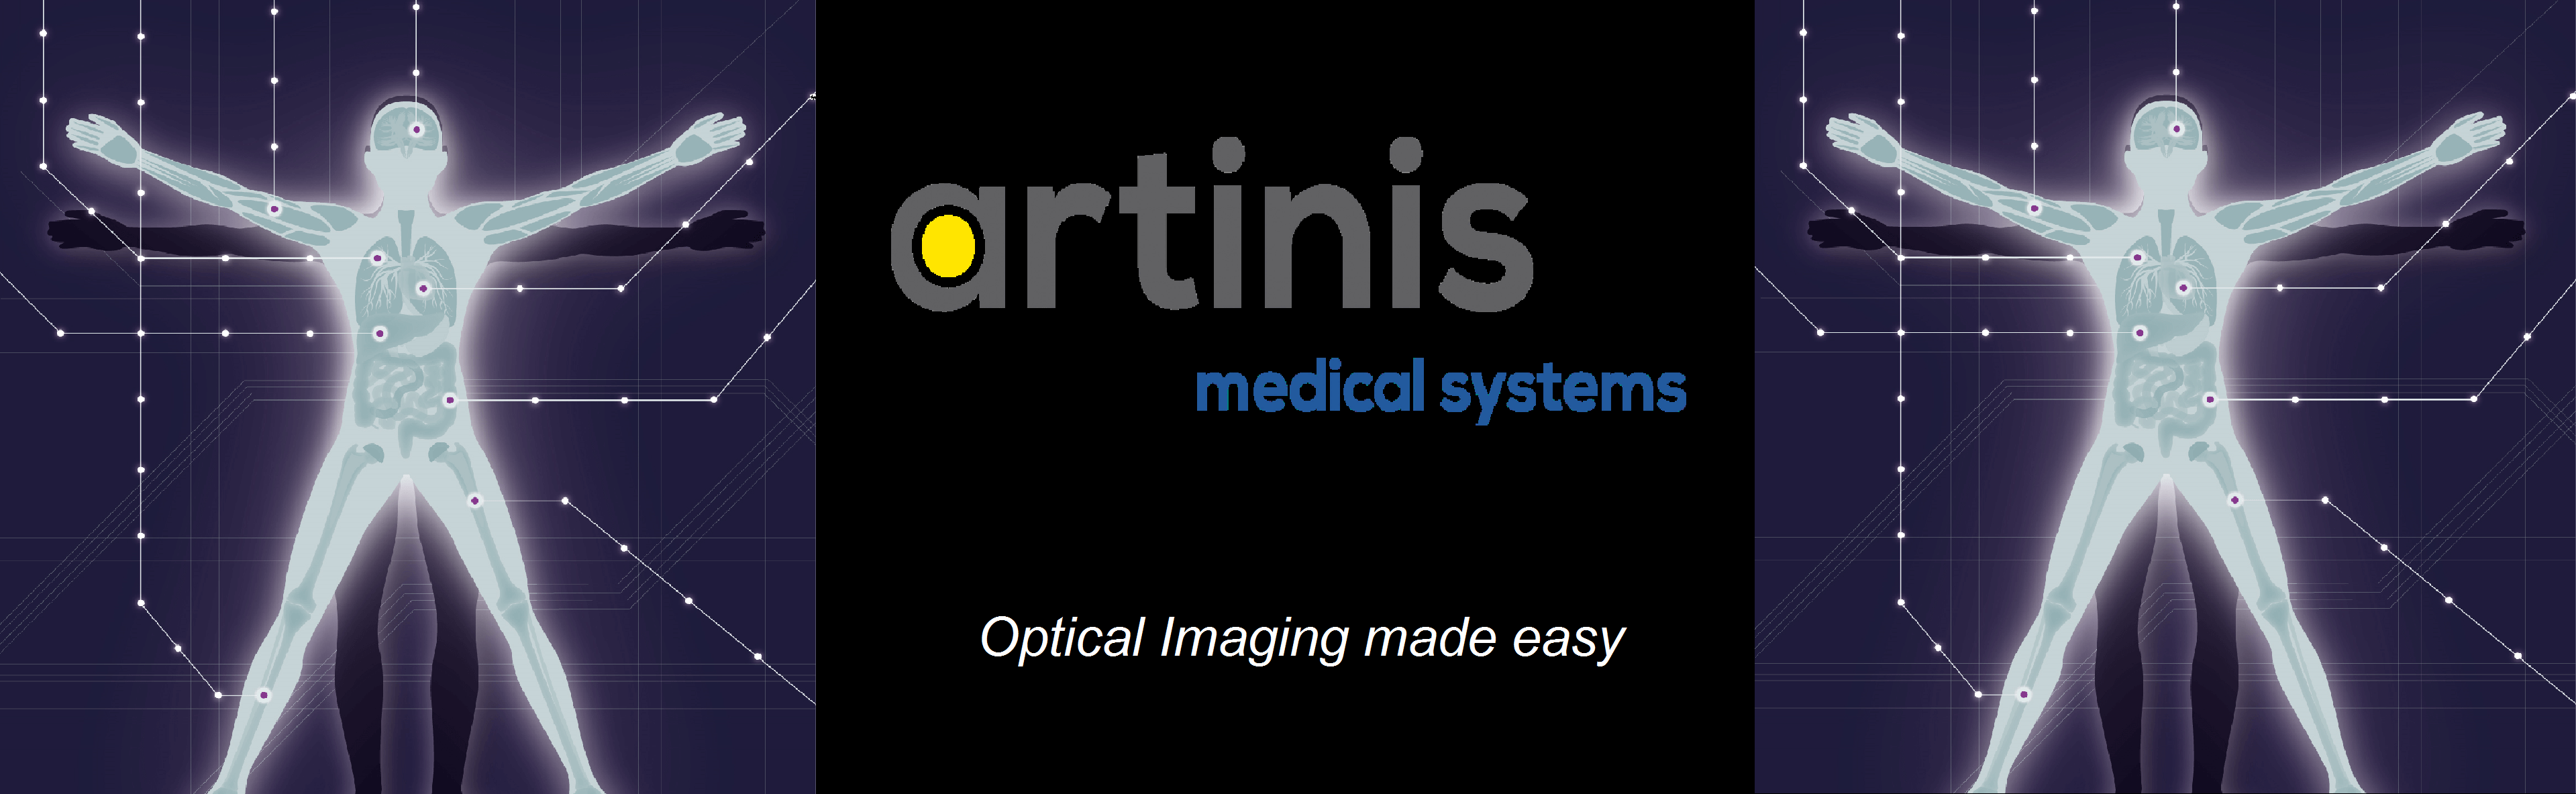 Artinis Medical Systems - Optical Imaging made easy